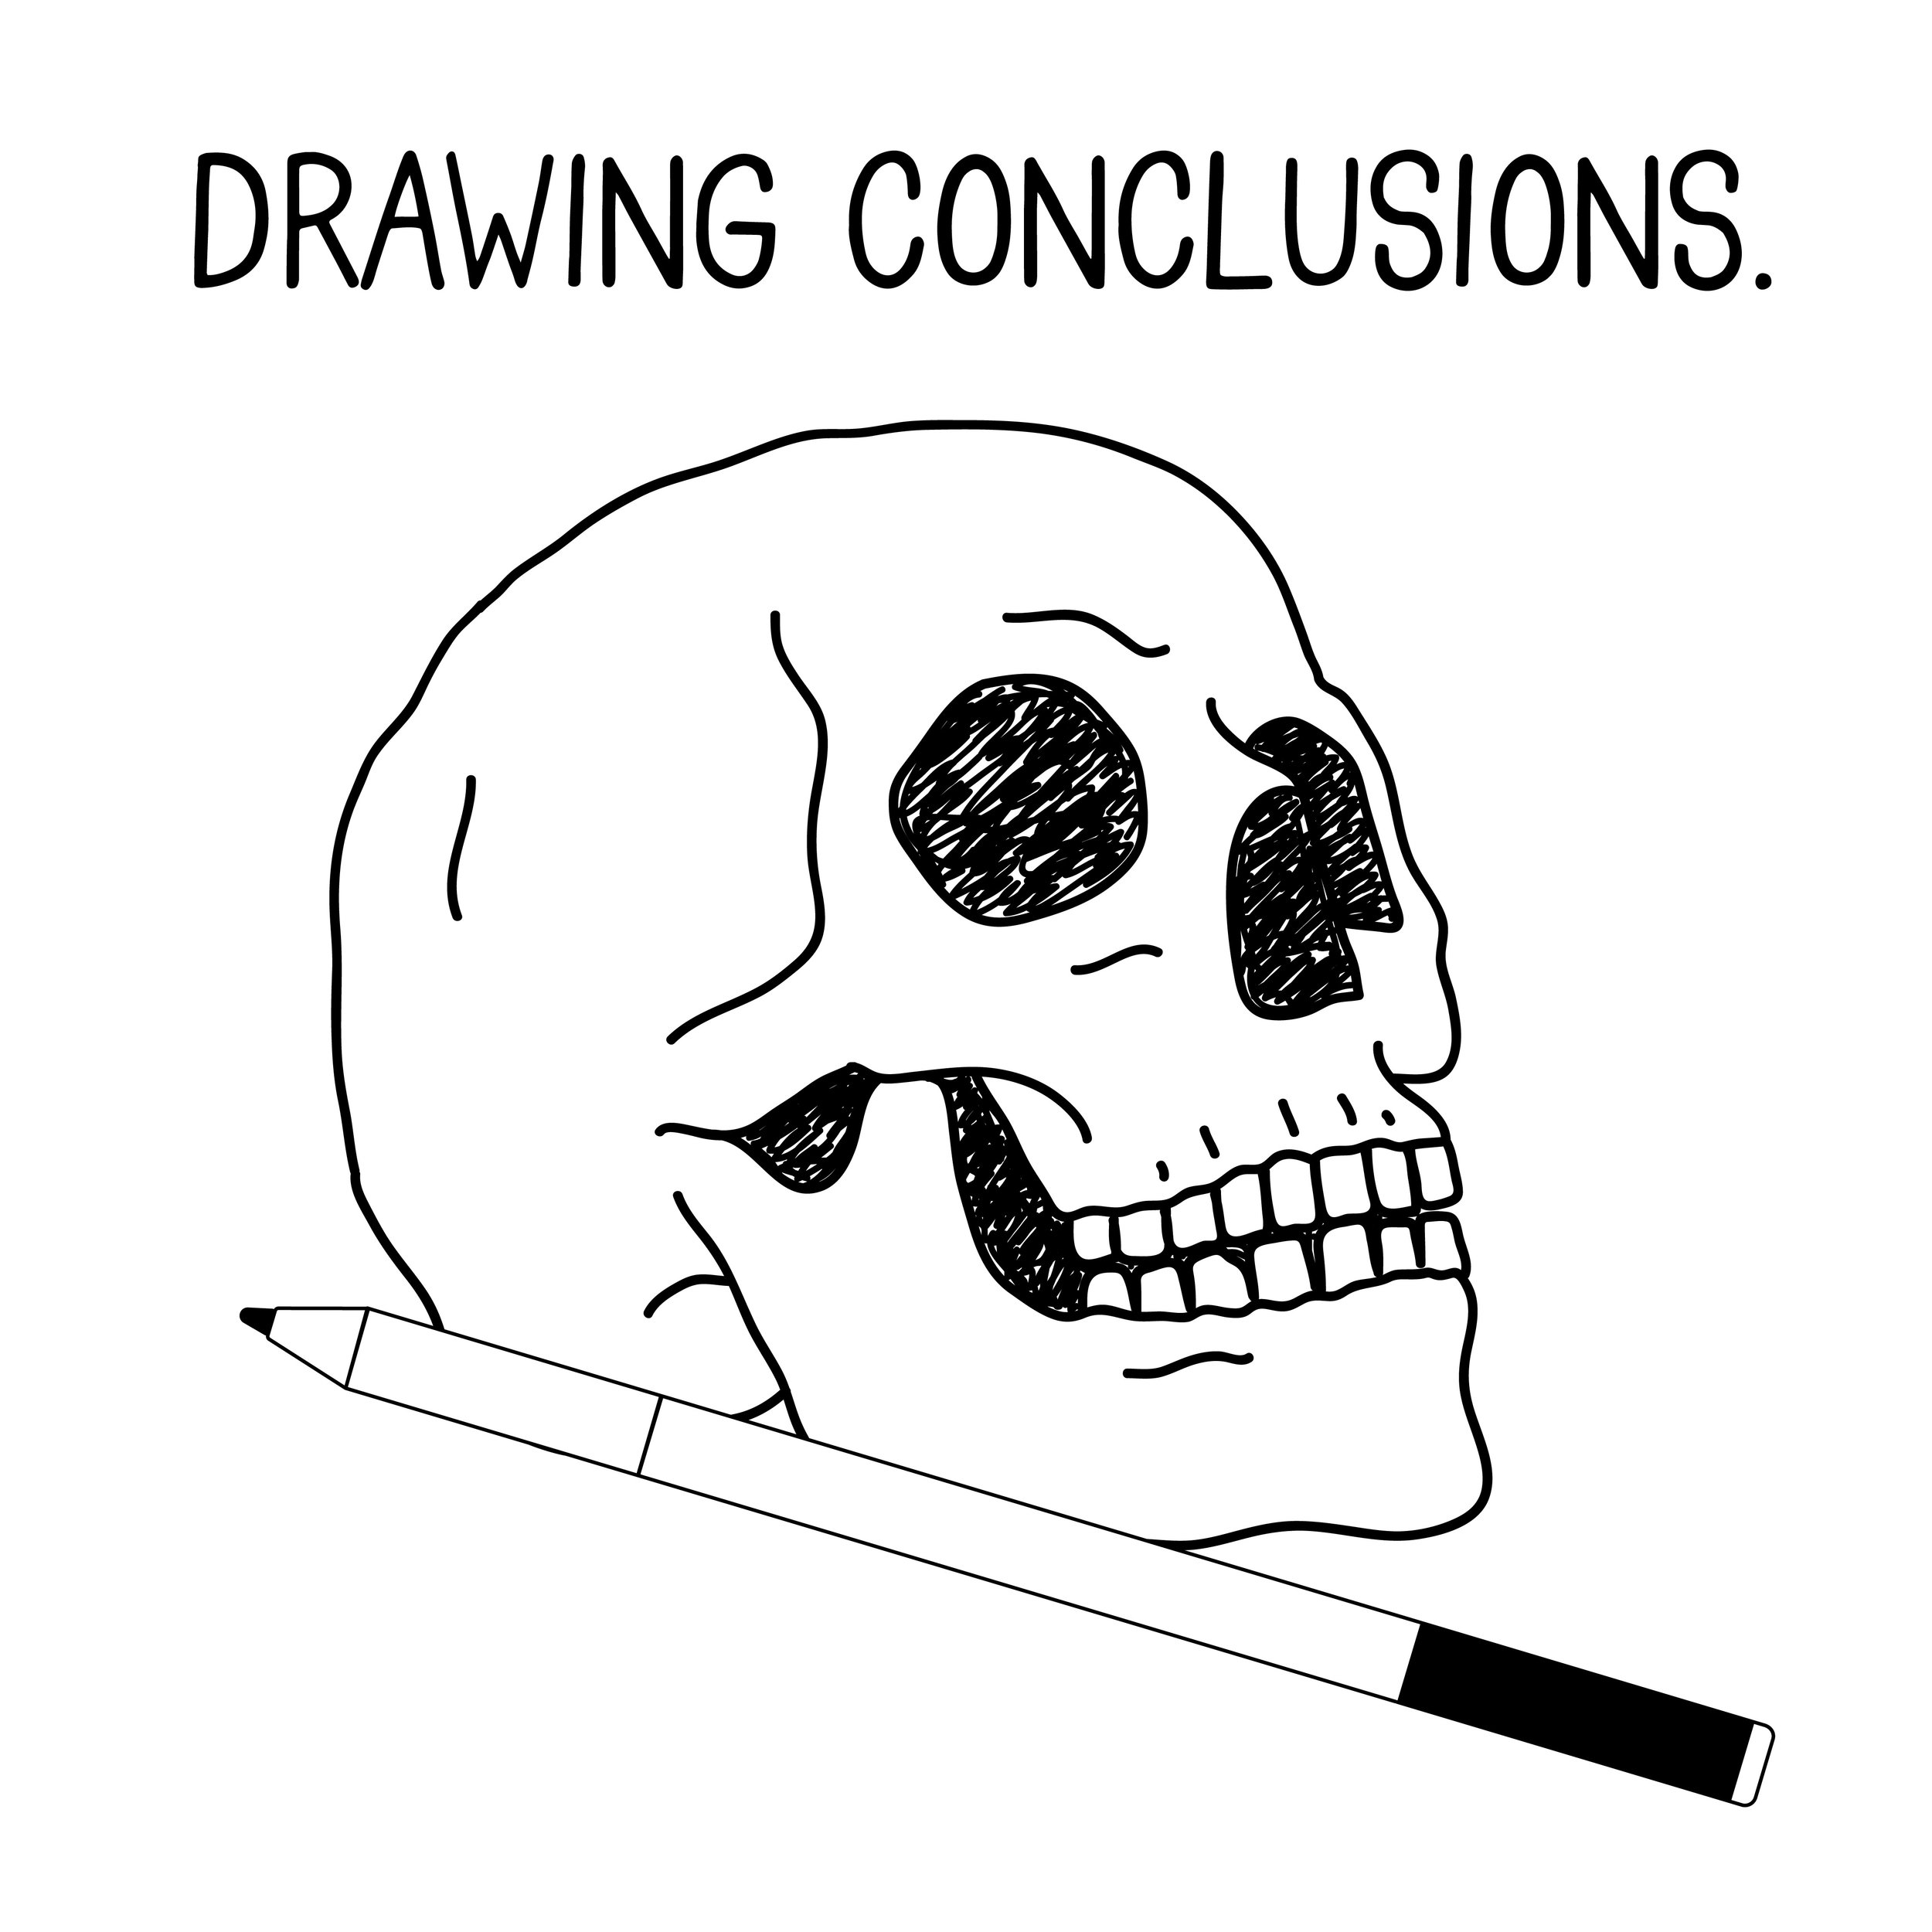 drawingconclusions-01.jpg